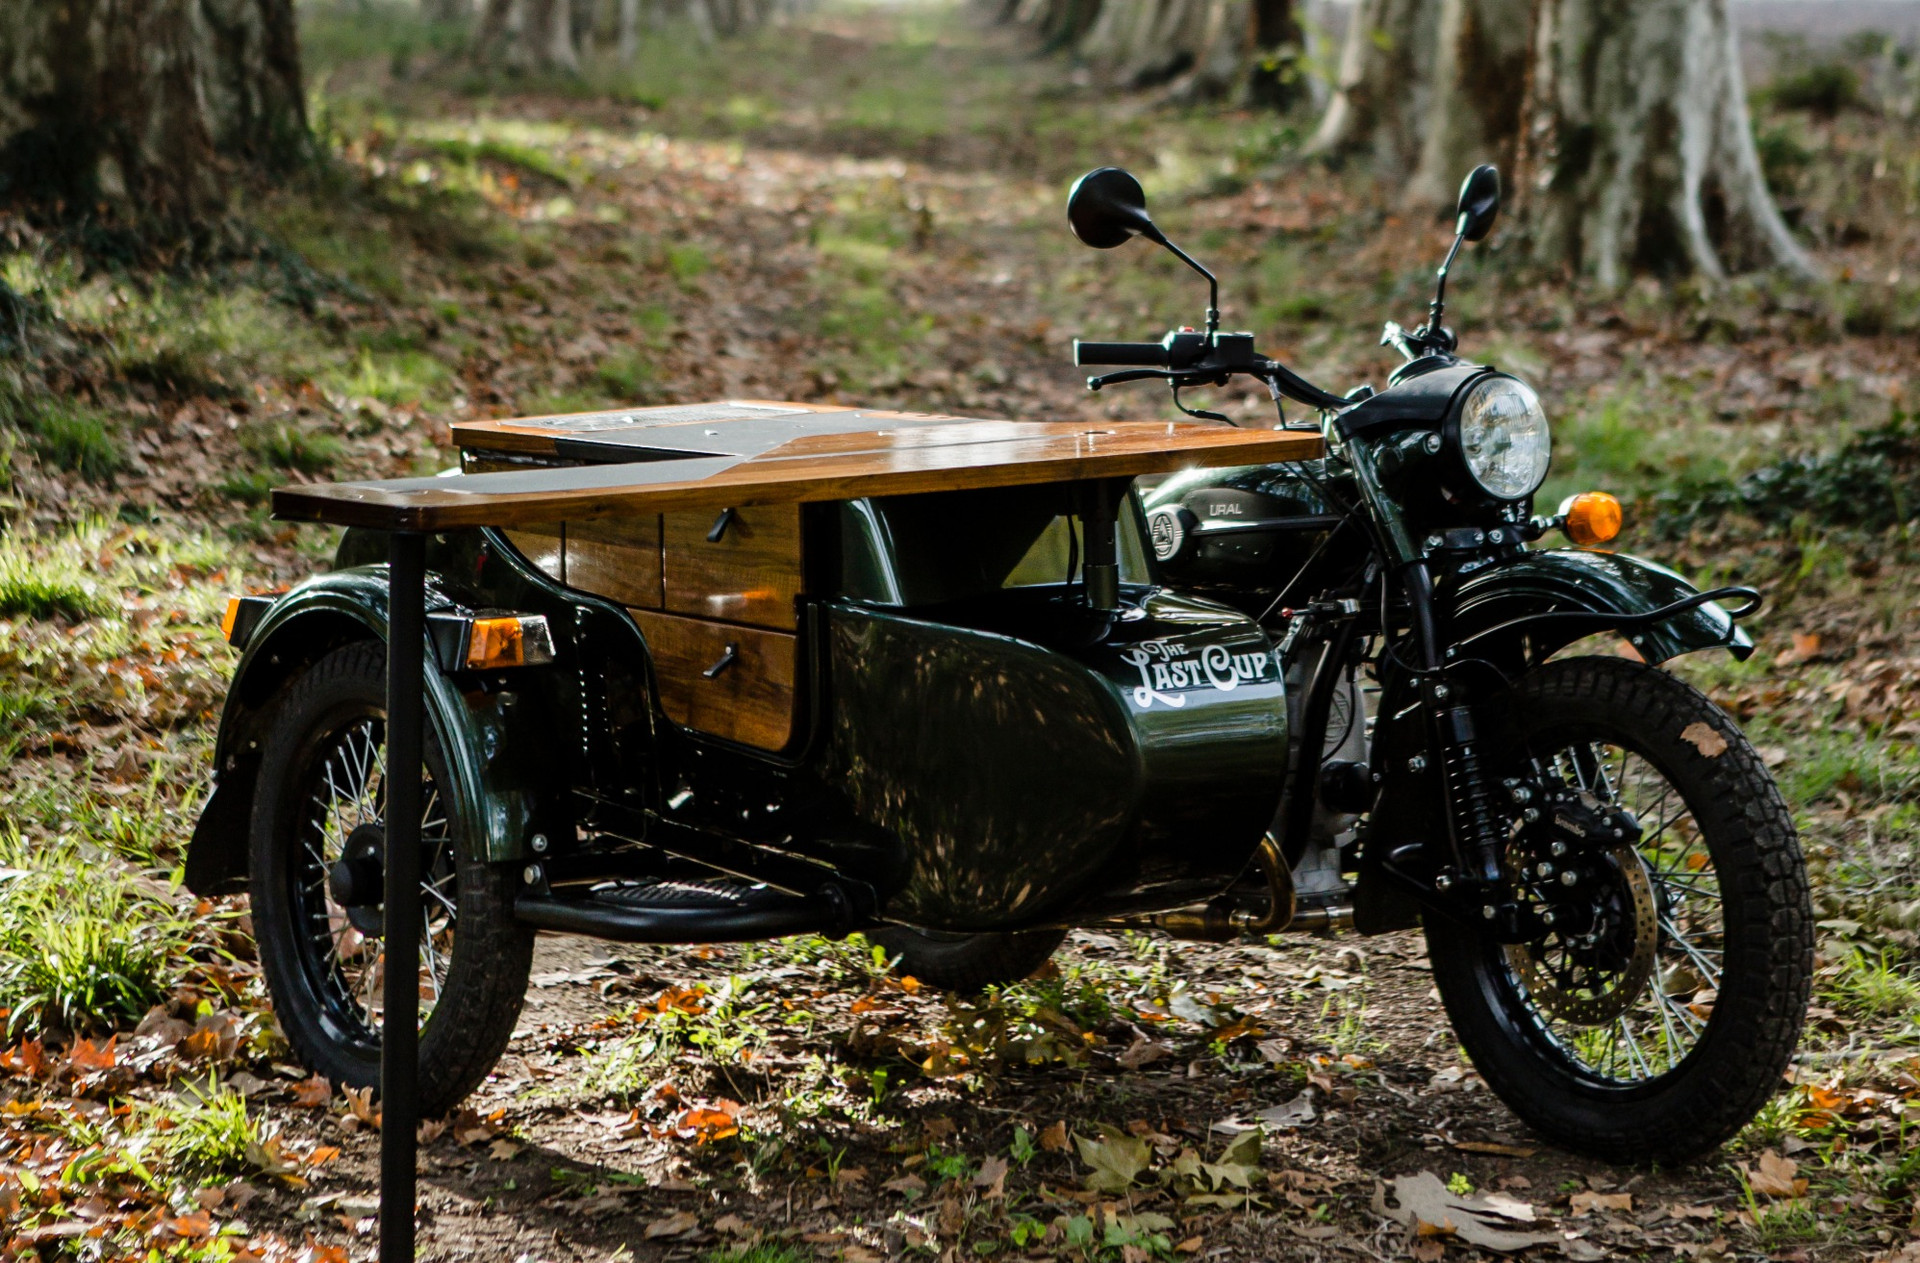 THE LAST CUP / SIDE CAR COFFEE